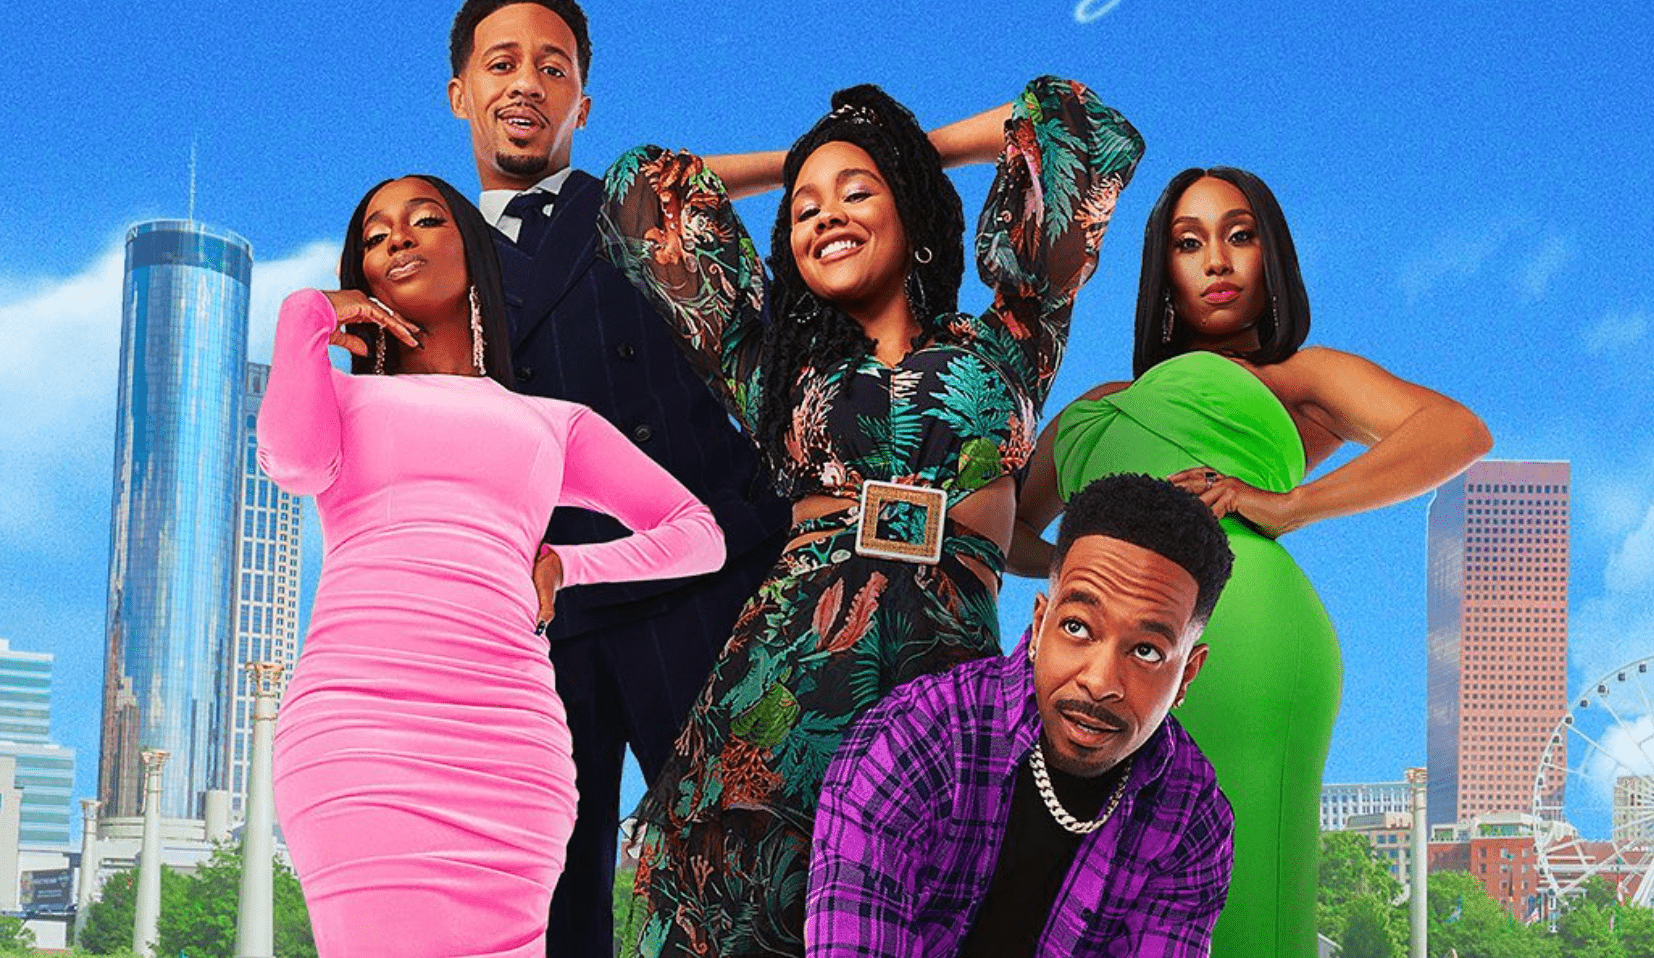 Trailer Alert: 'Bigger' Season 2 Is Back and Bigger Than Ever Before